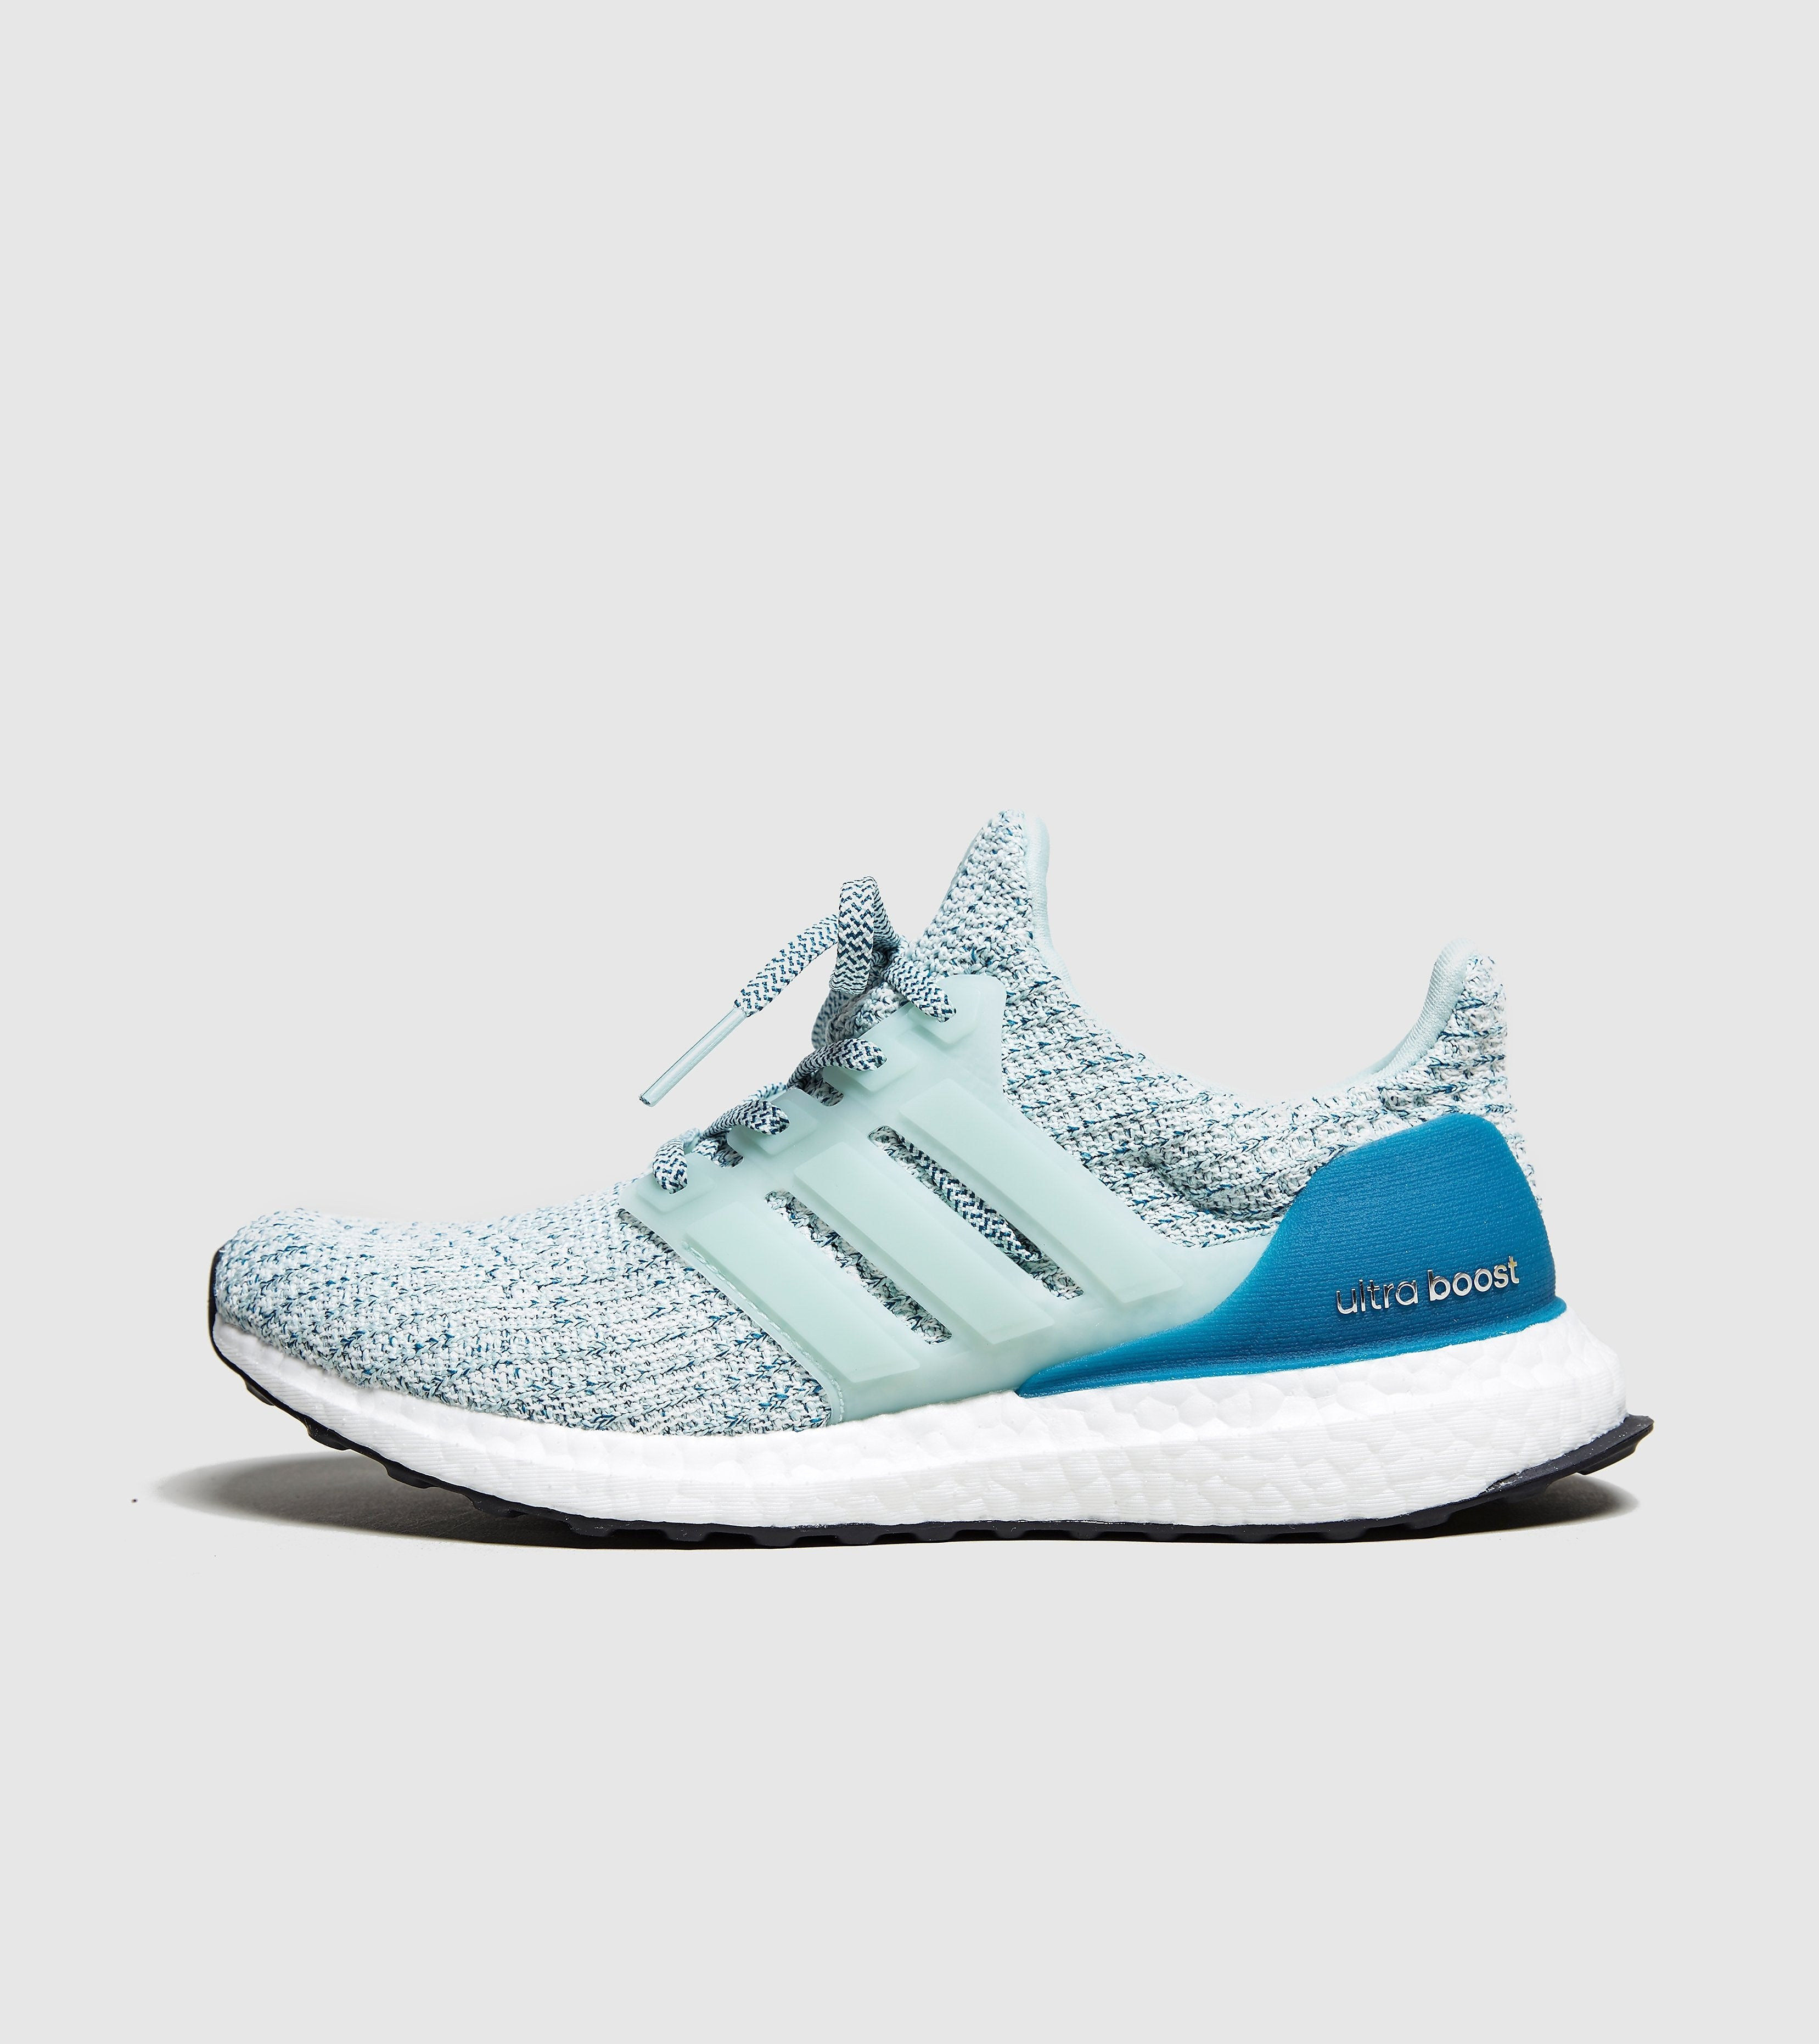 a39be6629 Adidas adidas Ultra Boost Women s